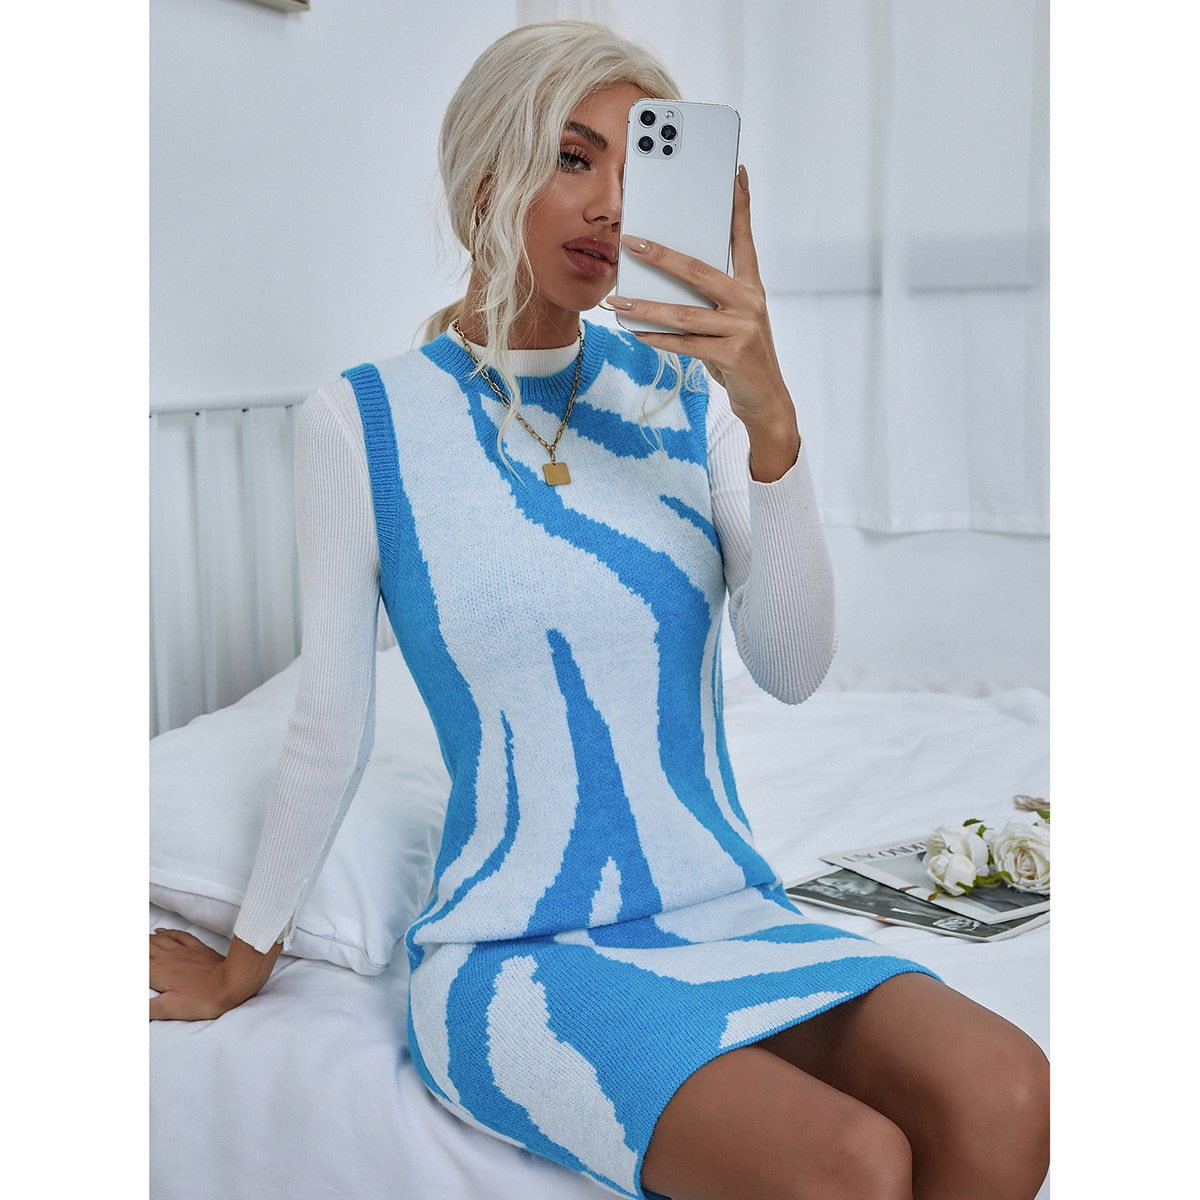 Graphic Pattern Form Fitted Sweater Dress, SHEIN  - buy with discount